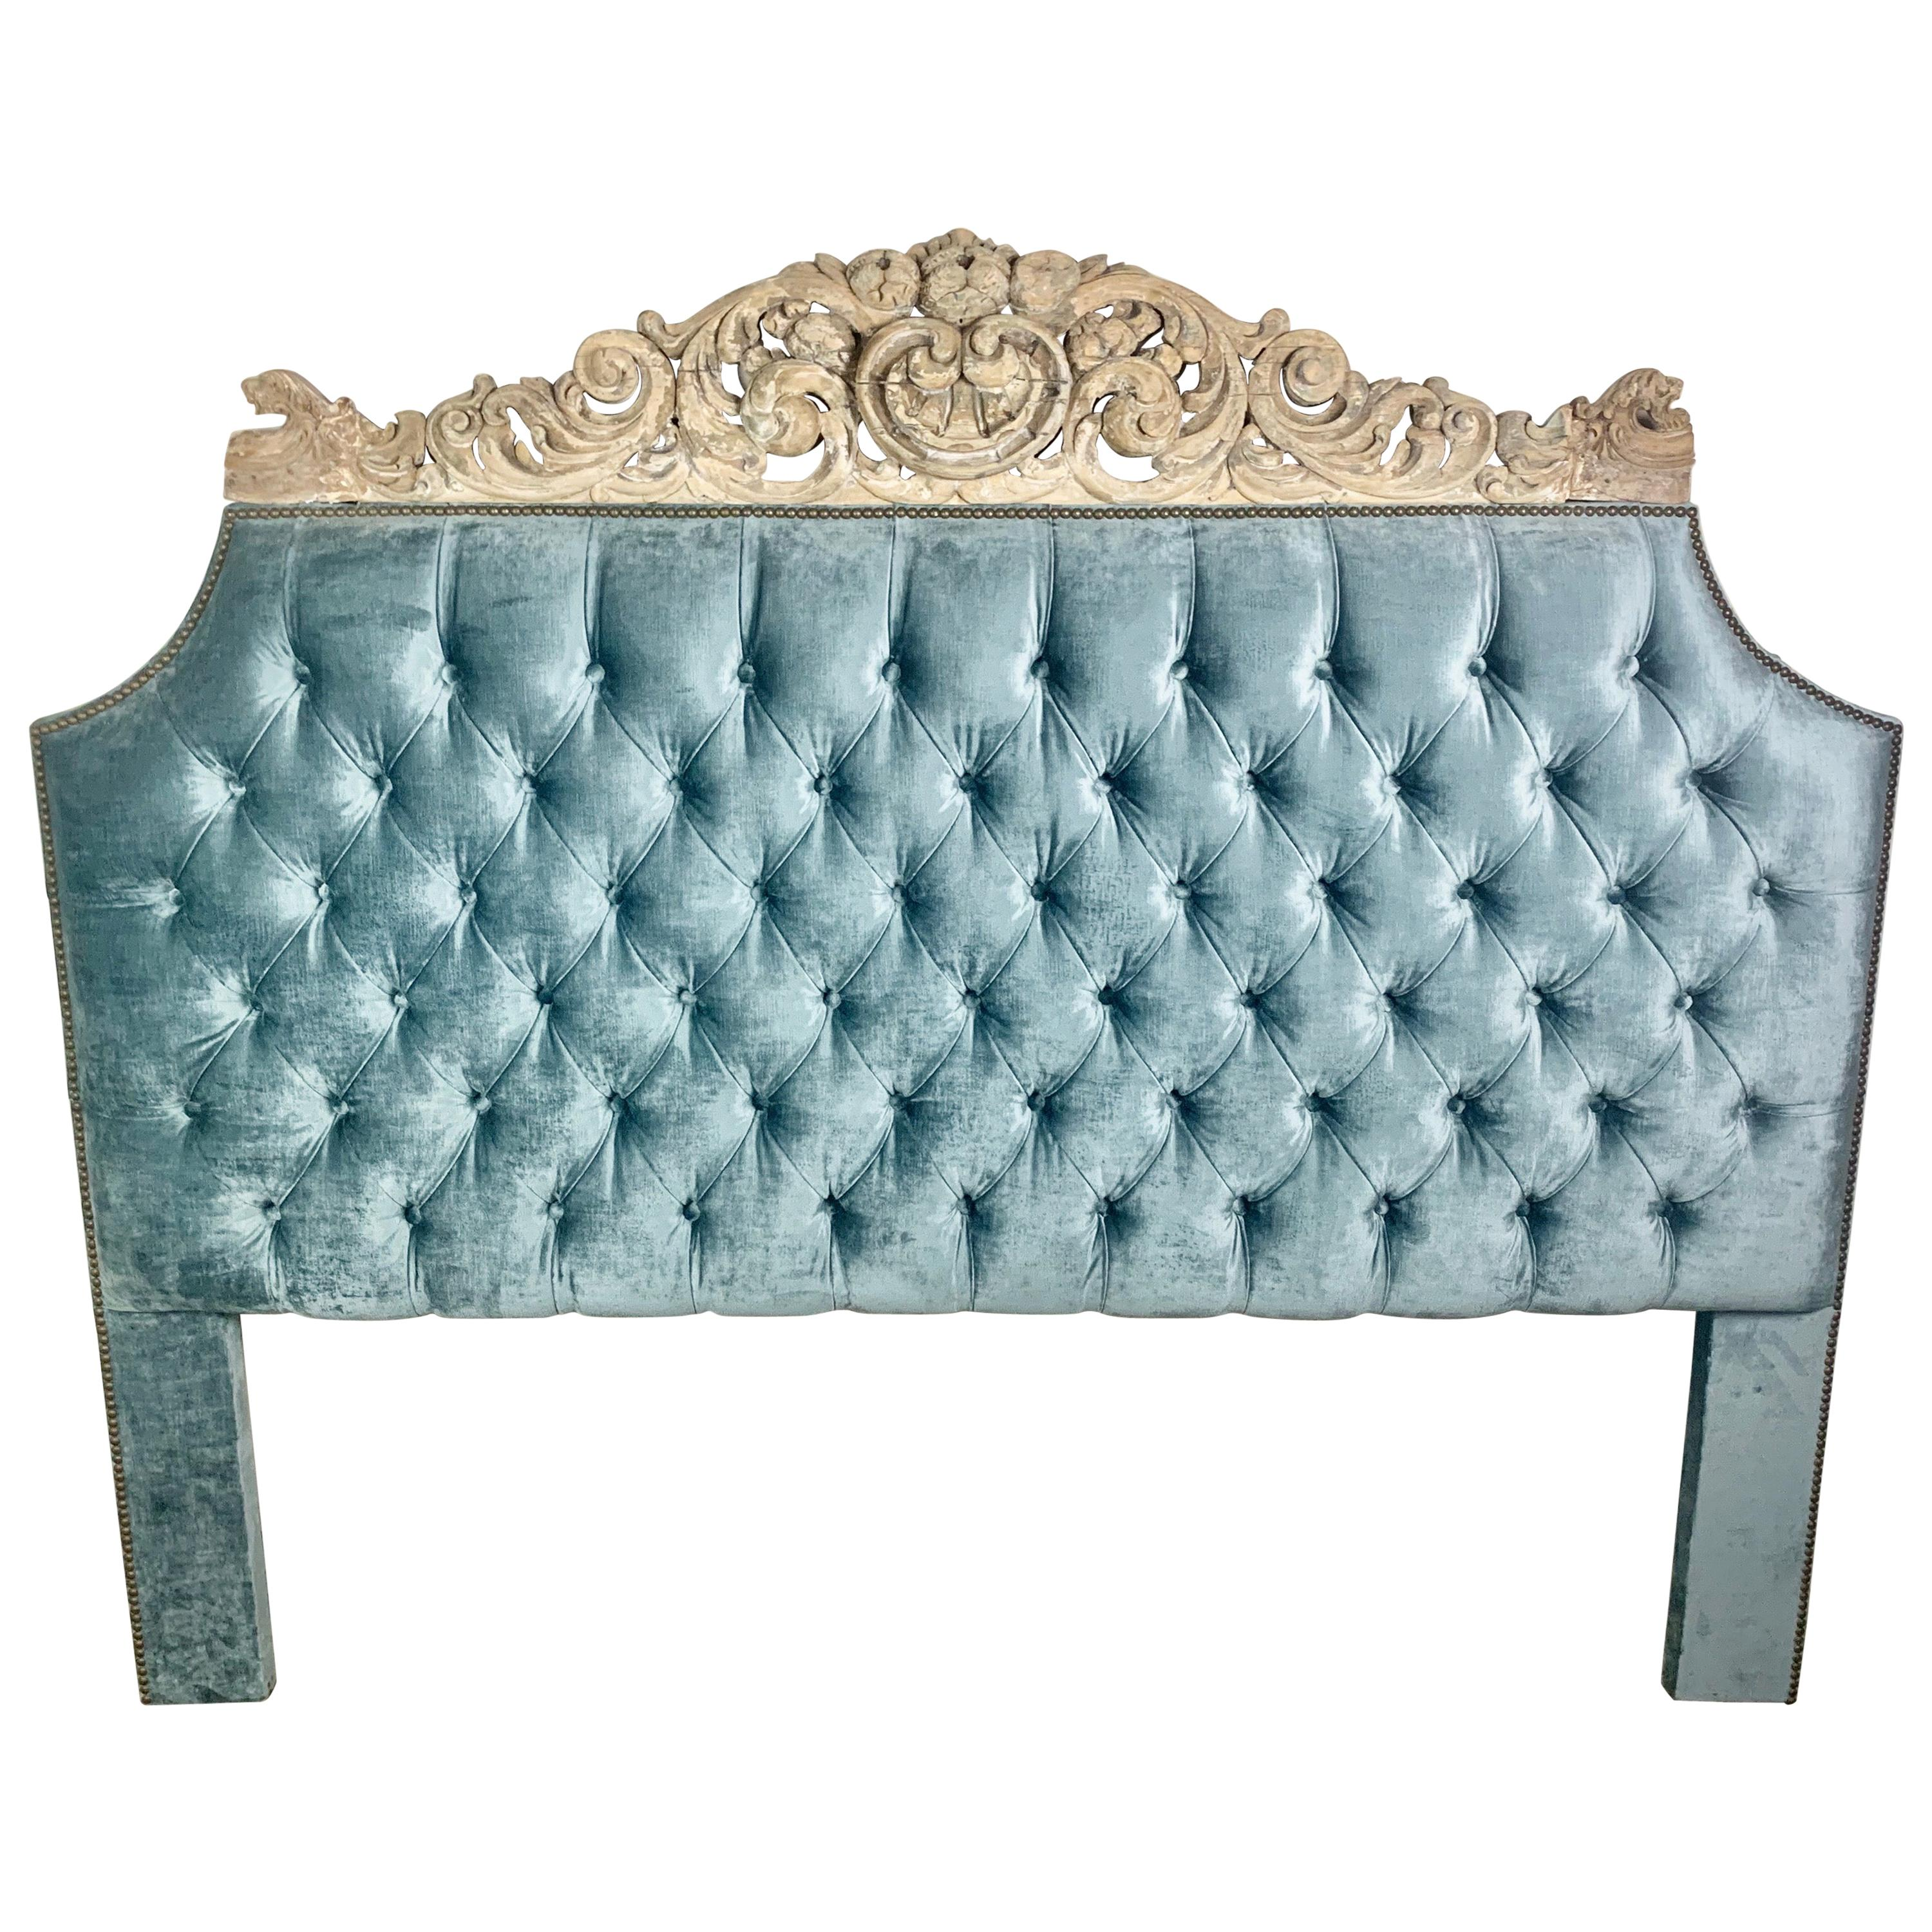 Velvet Tufted Headboard with Antique Architectural Carved Top